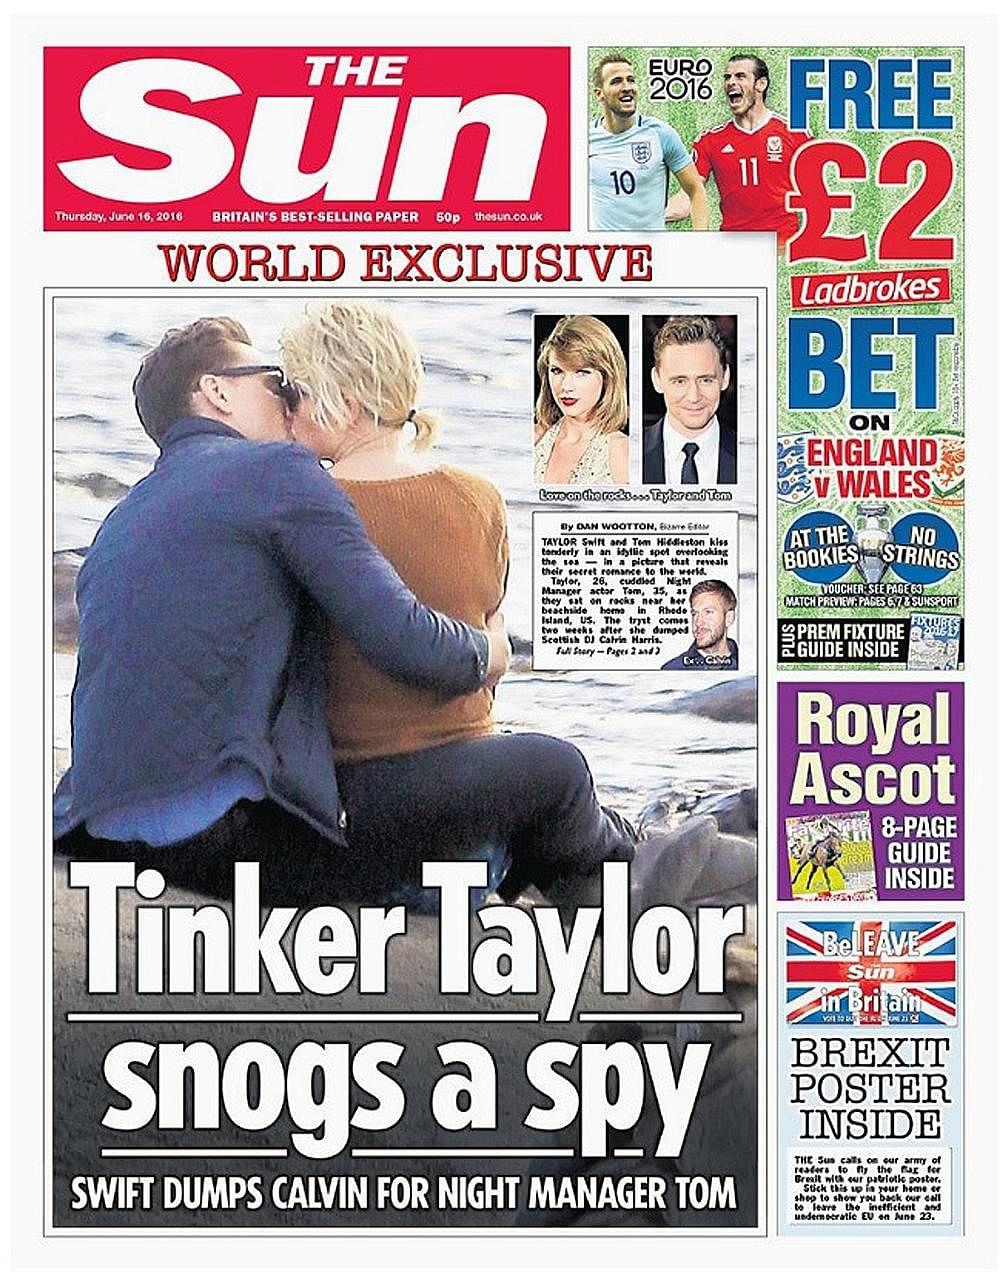 The Web has been flooded with photos of Taylor Swift with Tom Hiddleston since The Sun released photos of them two weeks ago.